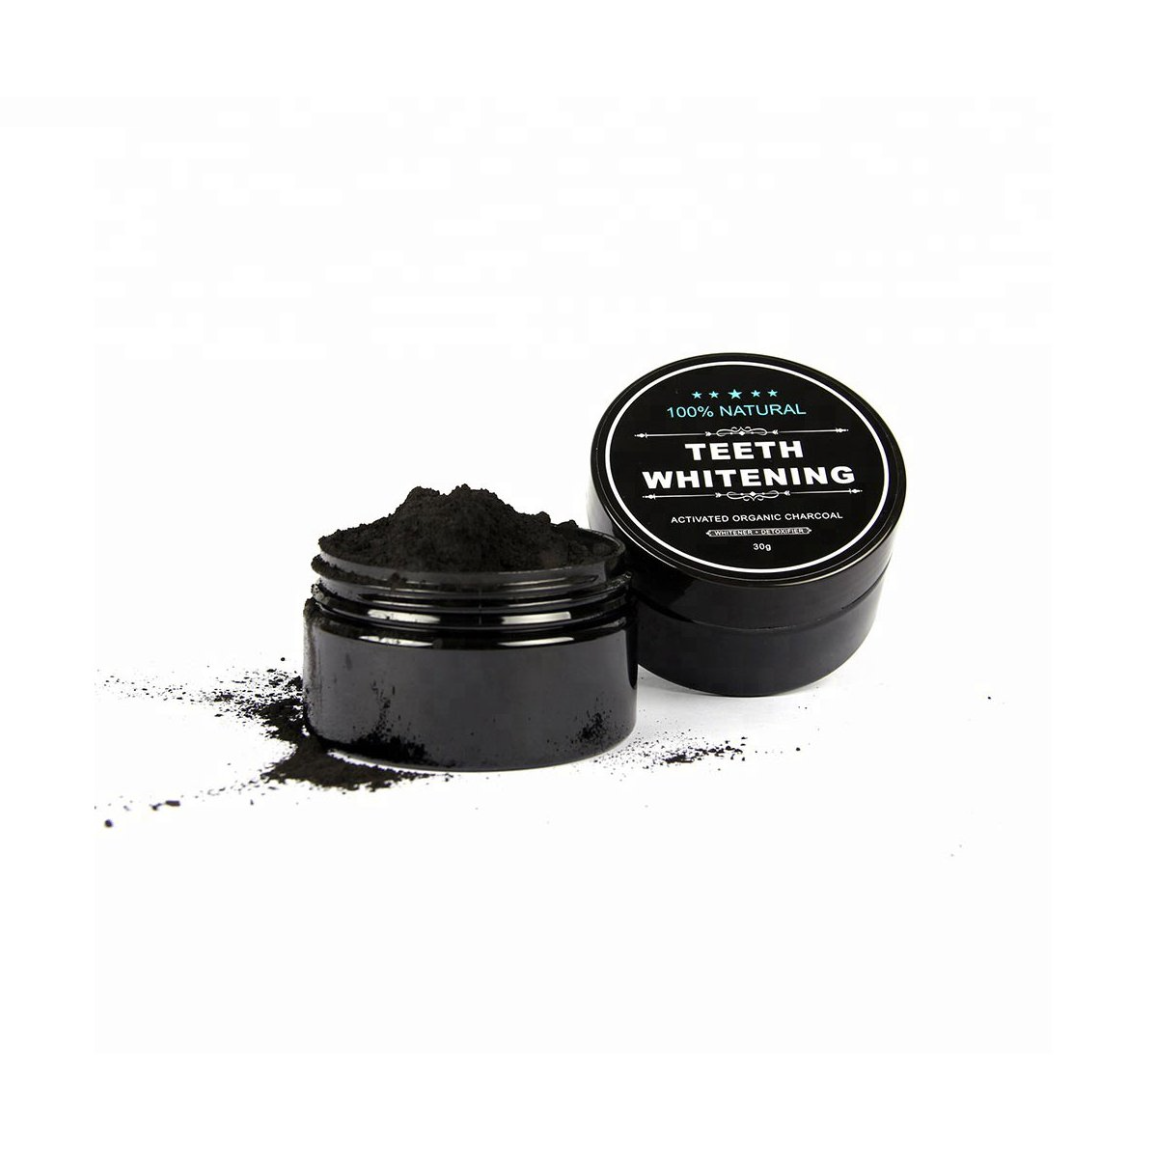 Whitening Charcoal (30g)